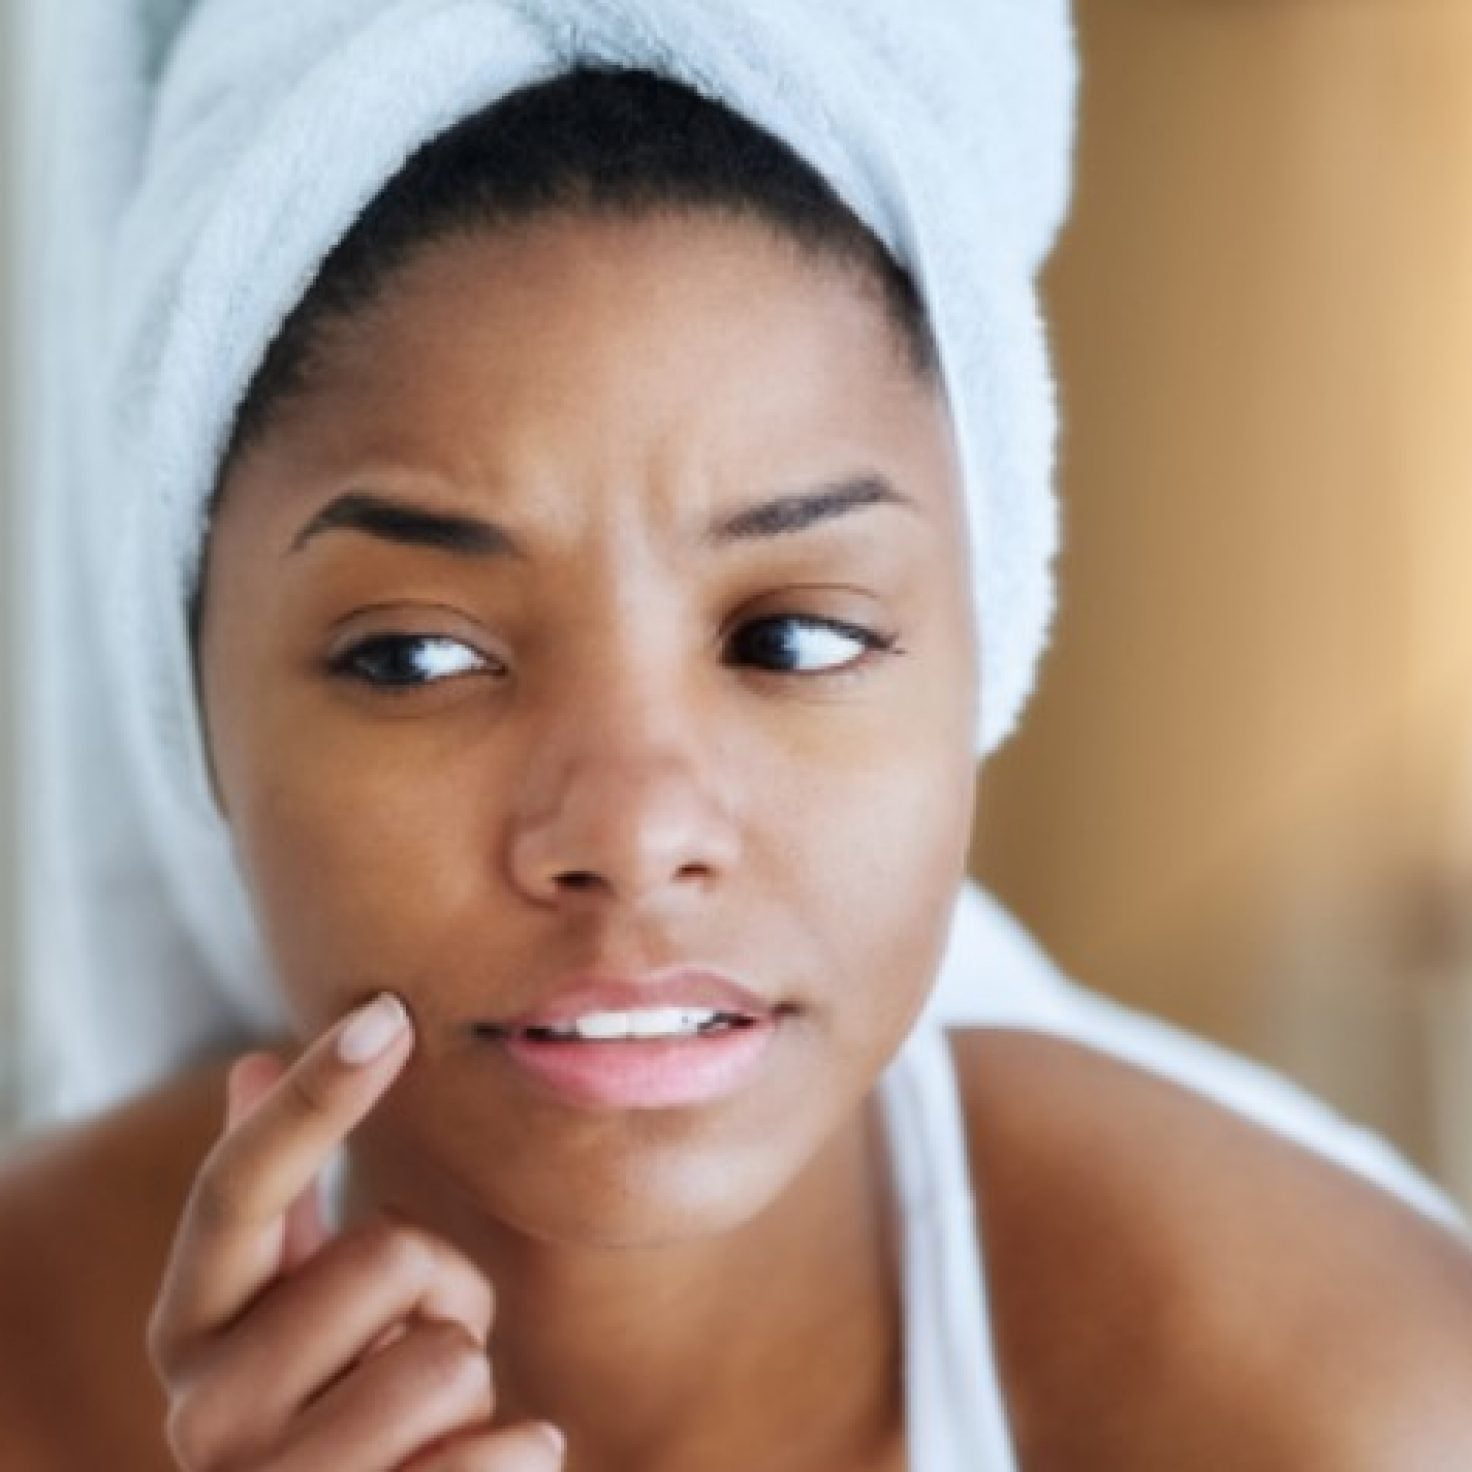 5 Quick And Easy Ways To Get Rid Of Blemishes